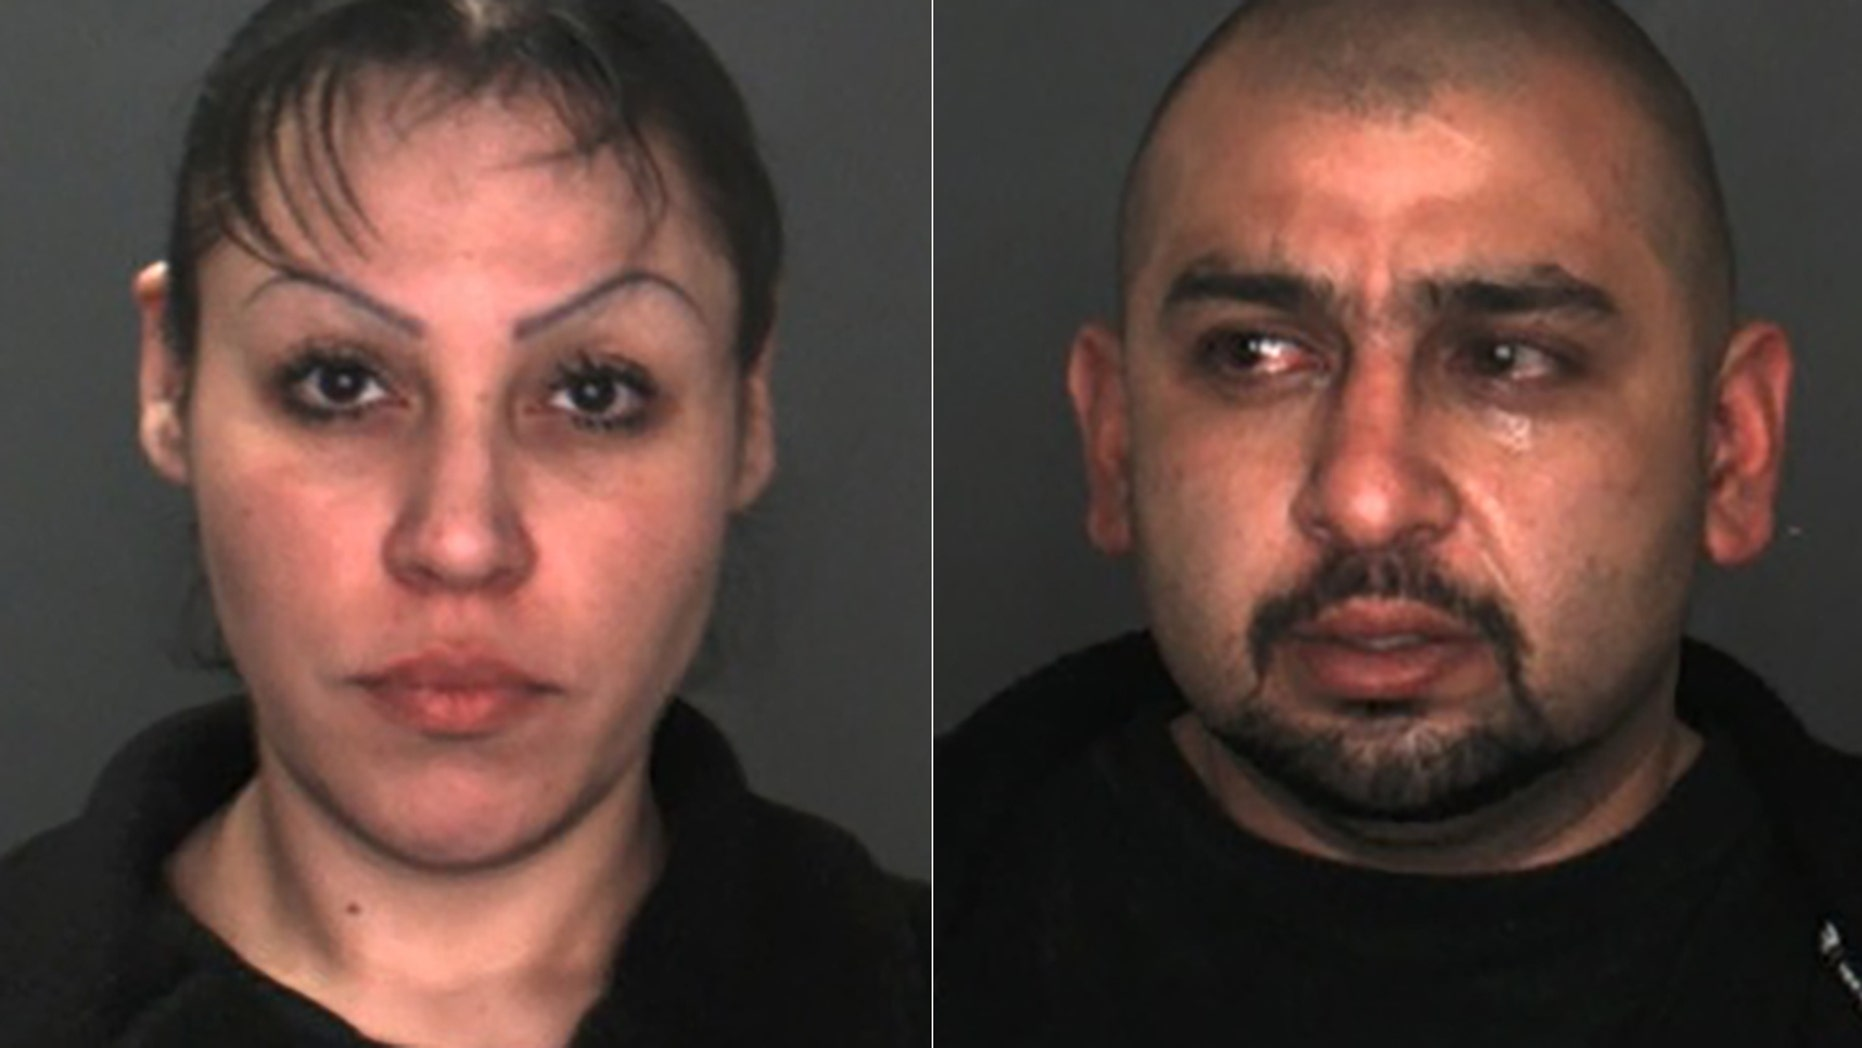 Miriam Sandoval Montana and Richard Rojo were arrested after their daughter died last week.